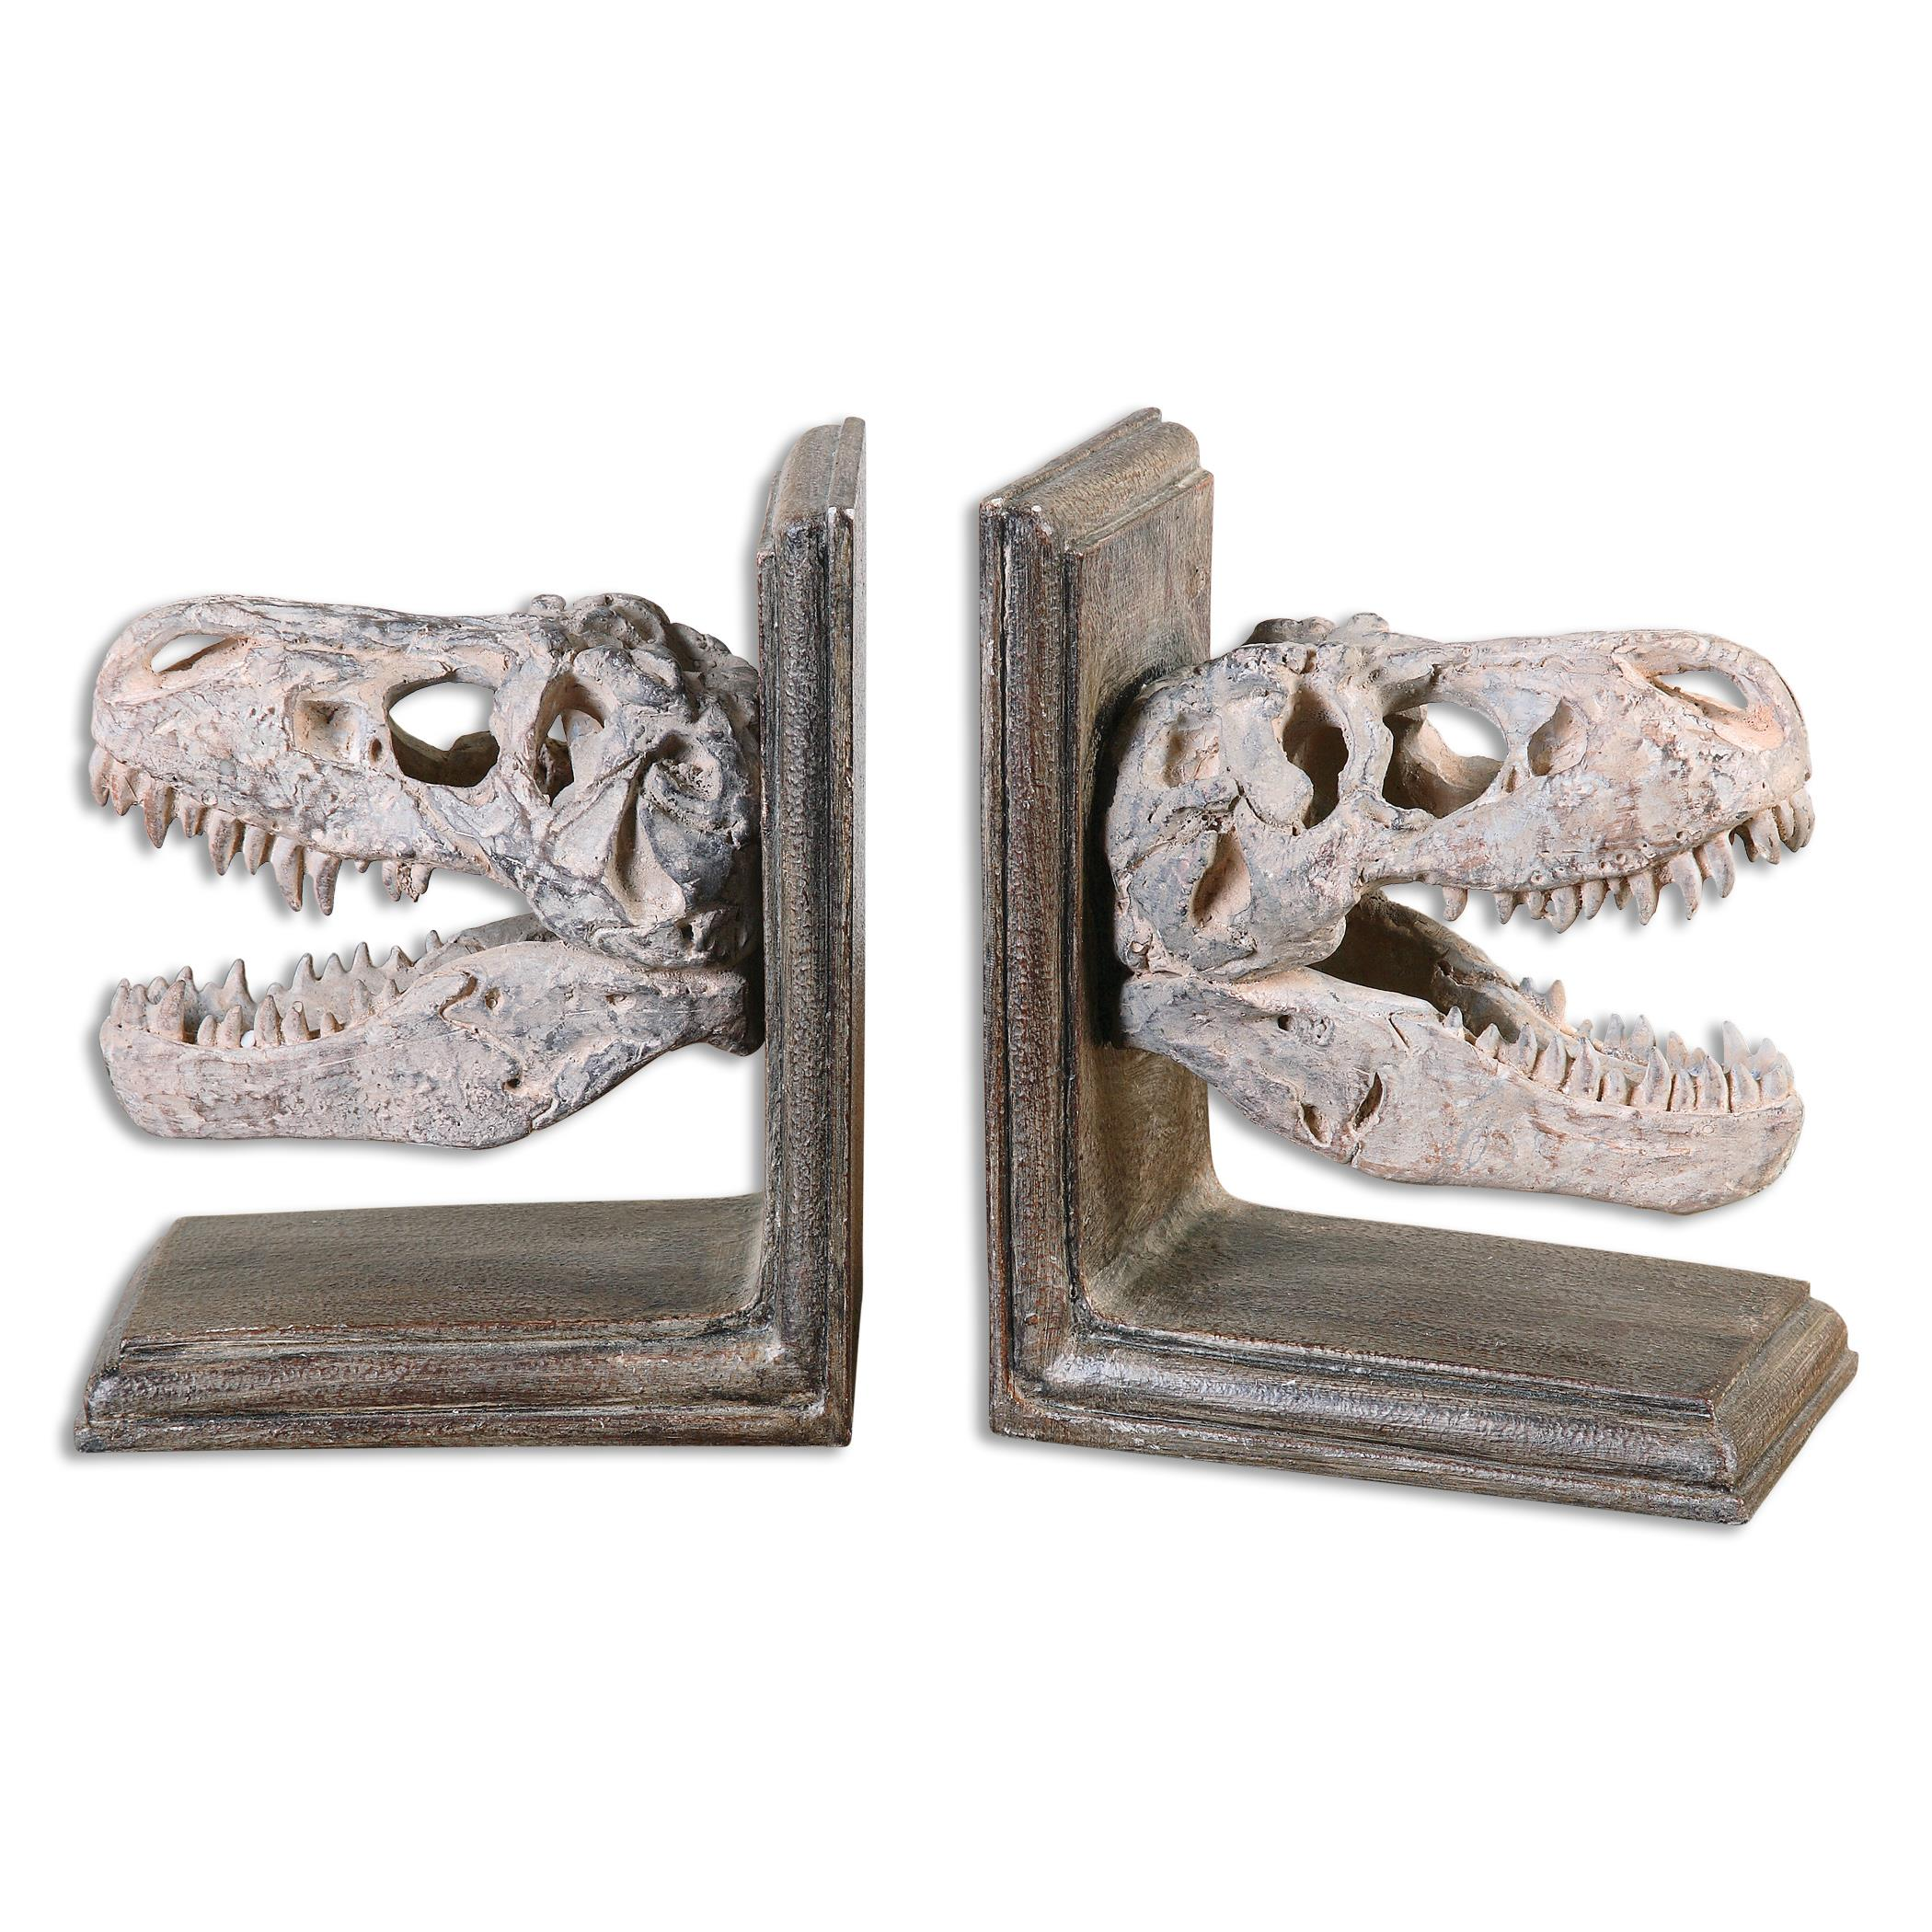 Uttermost Accessories Dinosaur Bookends, S/2 - Item Number: 19924